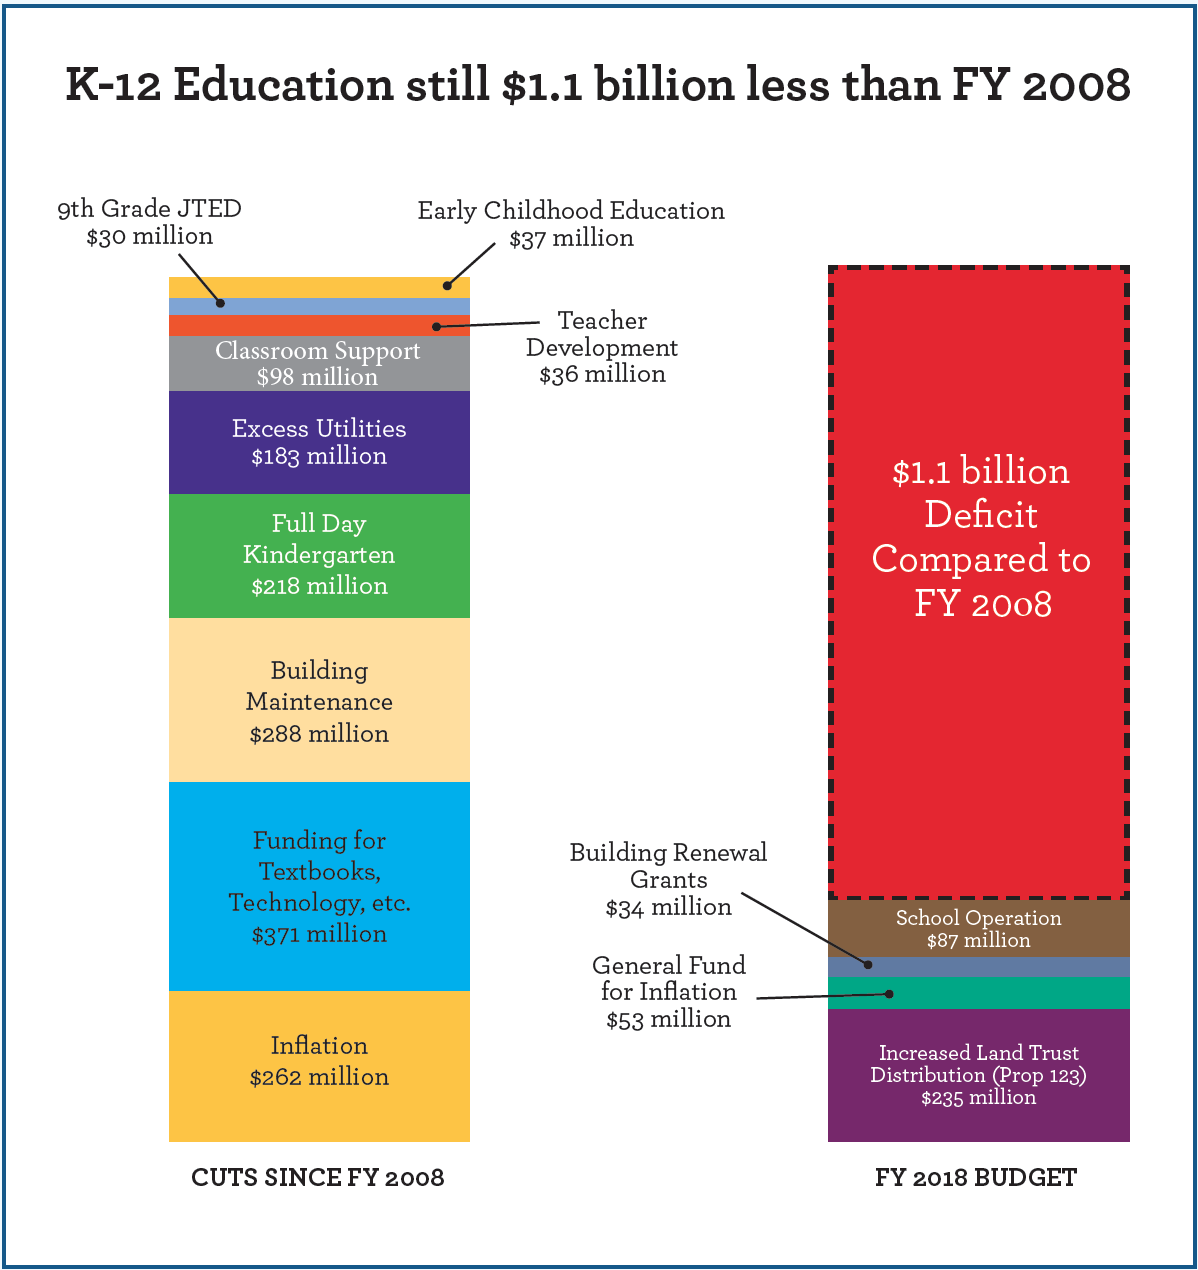 K-12 Education still $1.1 billion less than FY 2008